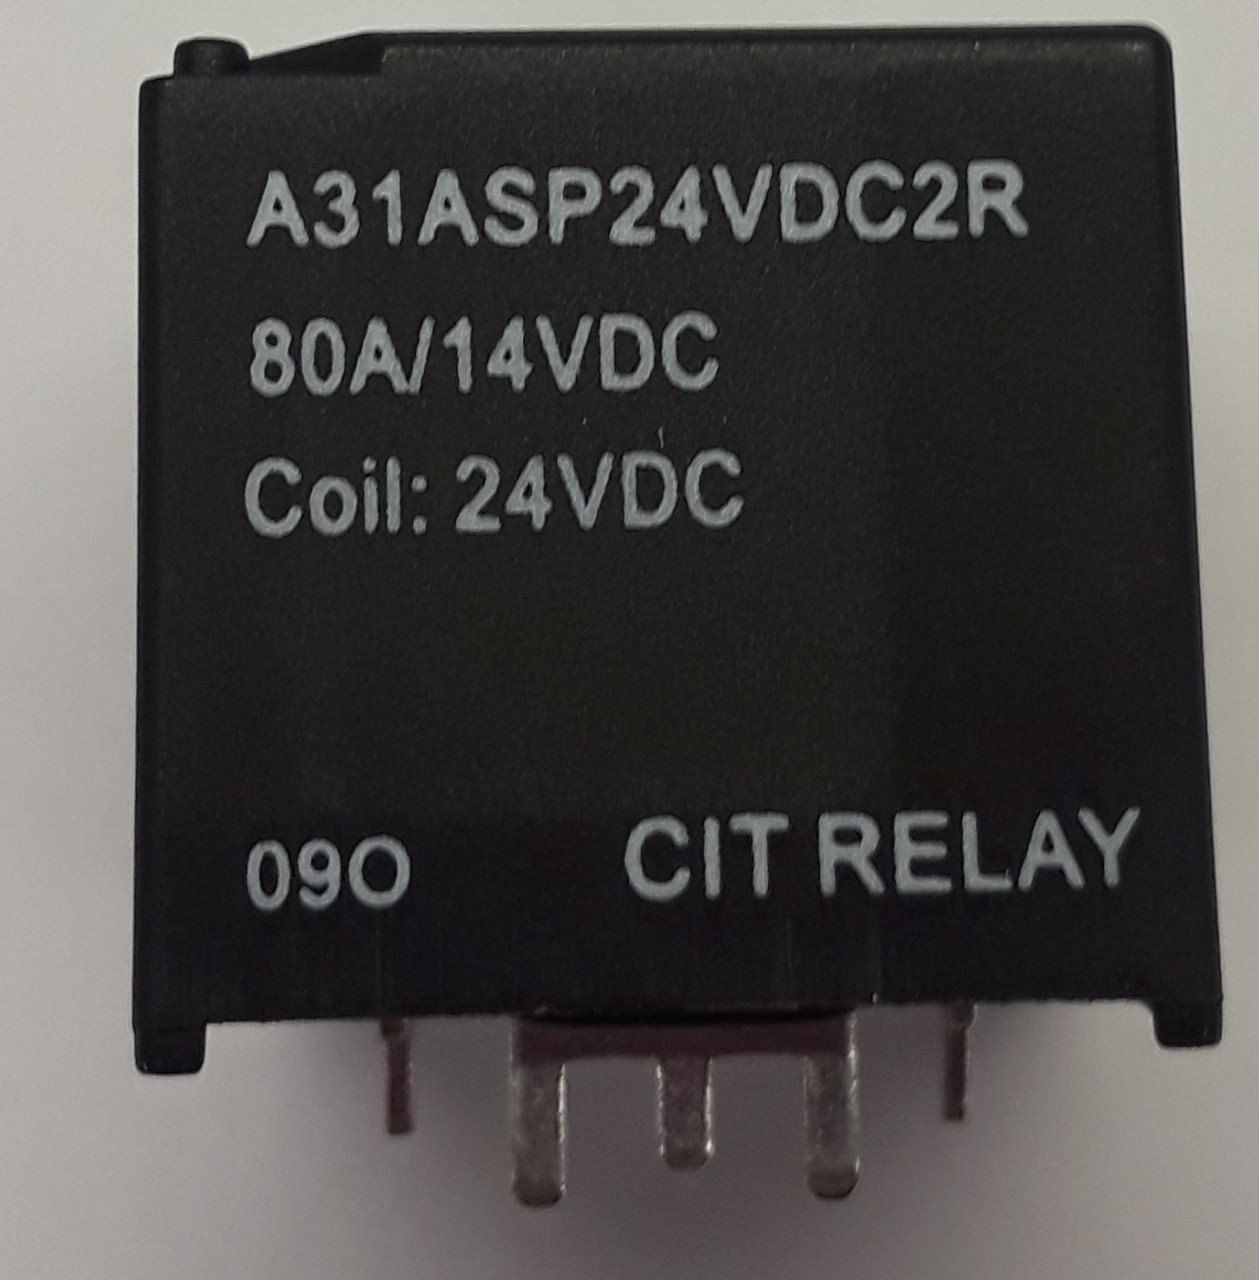 A31ASP24VDC2R Heavy Duty 80 Amp Automotive Relay, Normally Open, PC  terminals